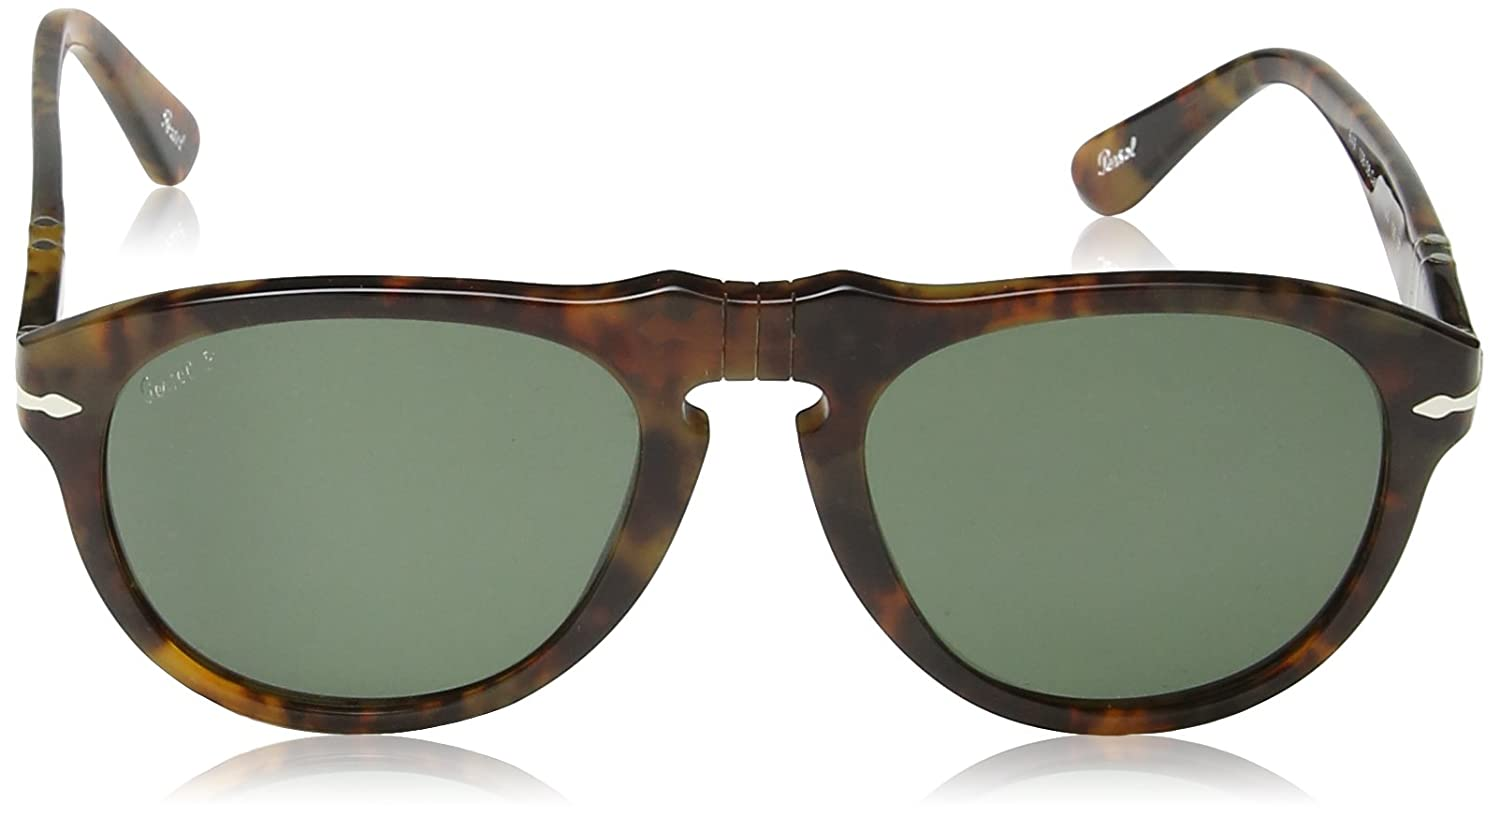 Persol PO0649 Sunglasses-108//58 Caffe Crystal Green Polarized Lens -52mm